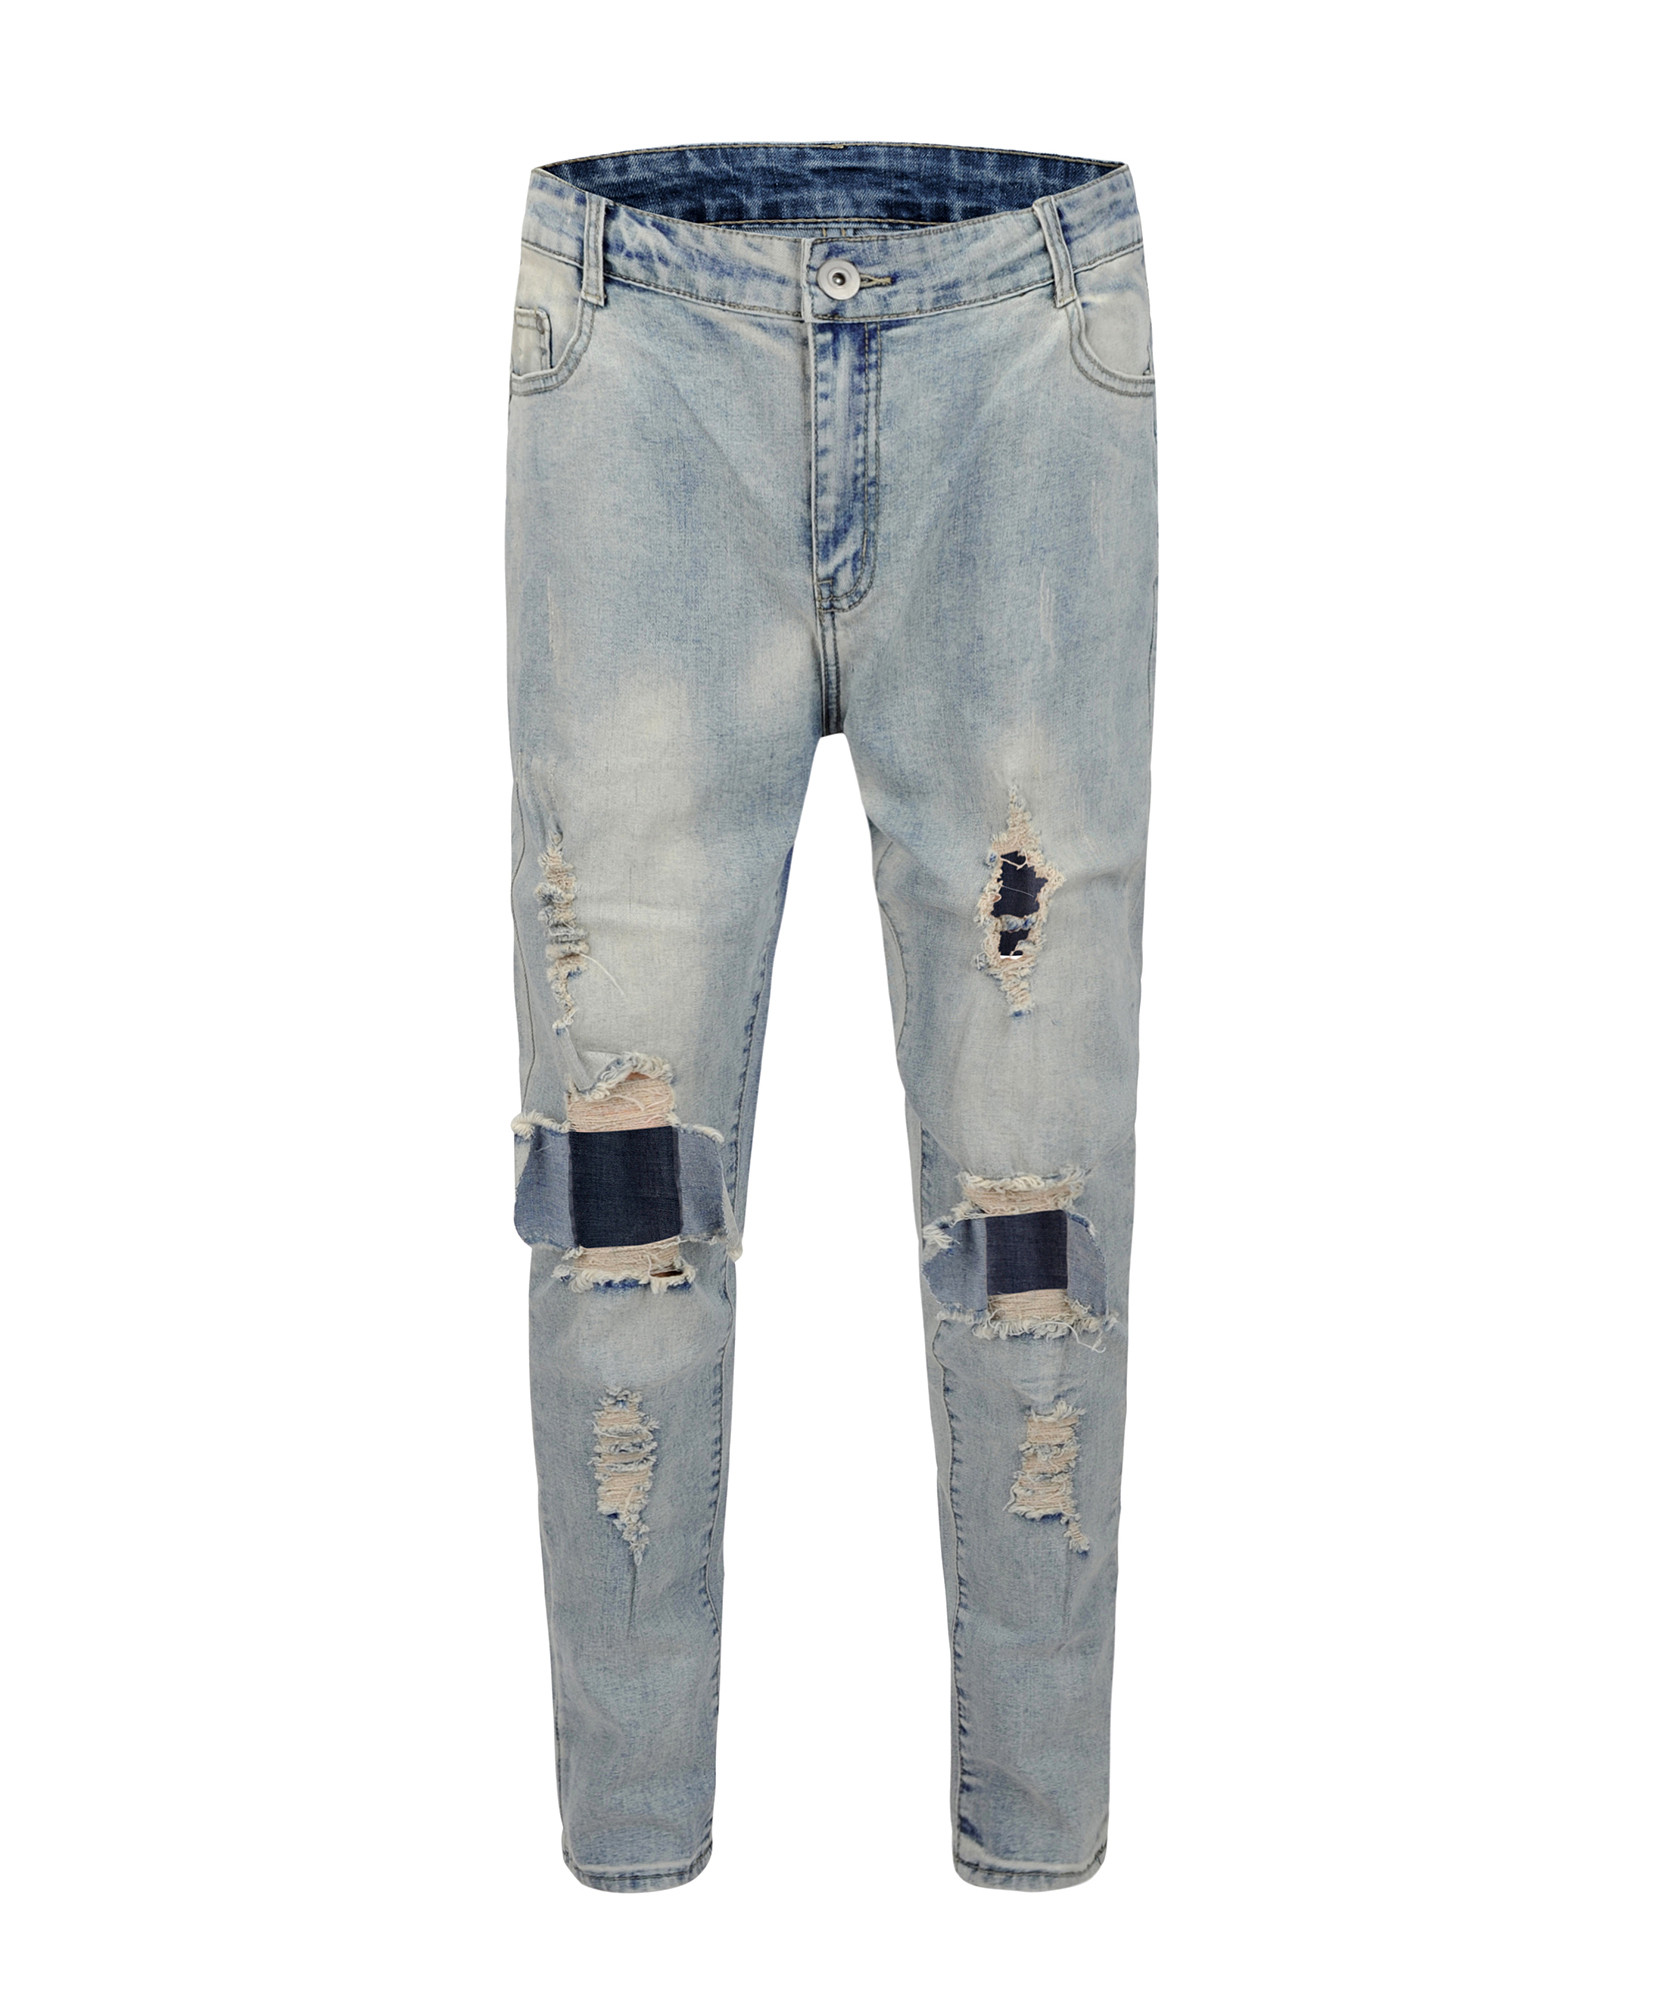 Destroyed Denim V3 - Blue